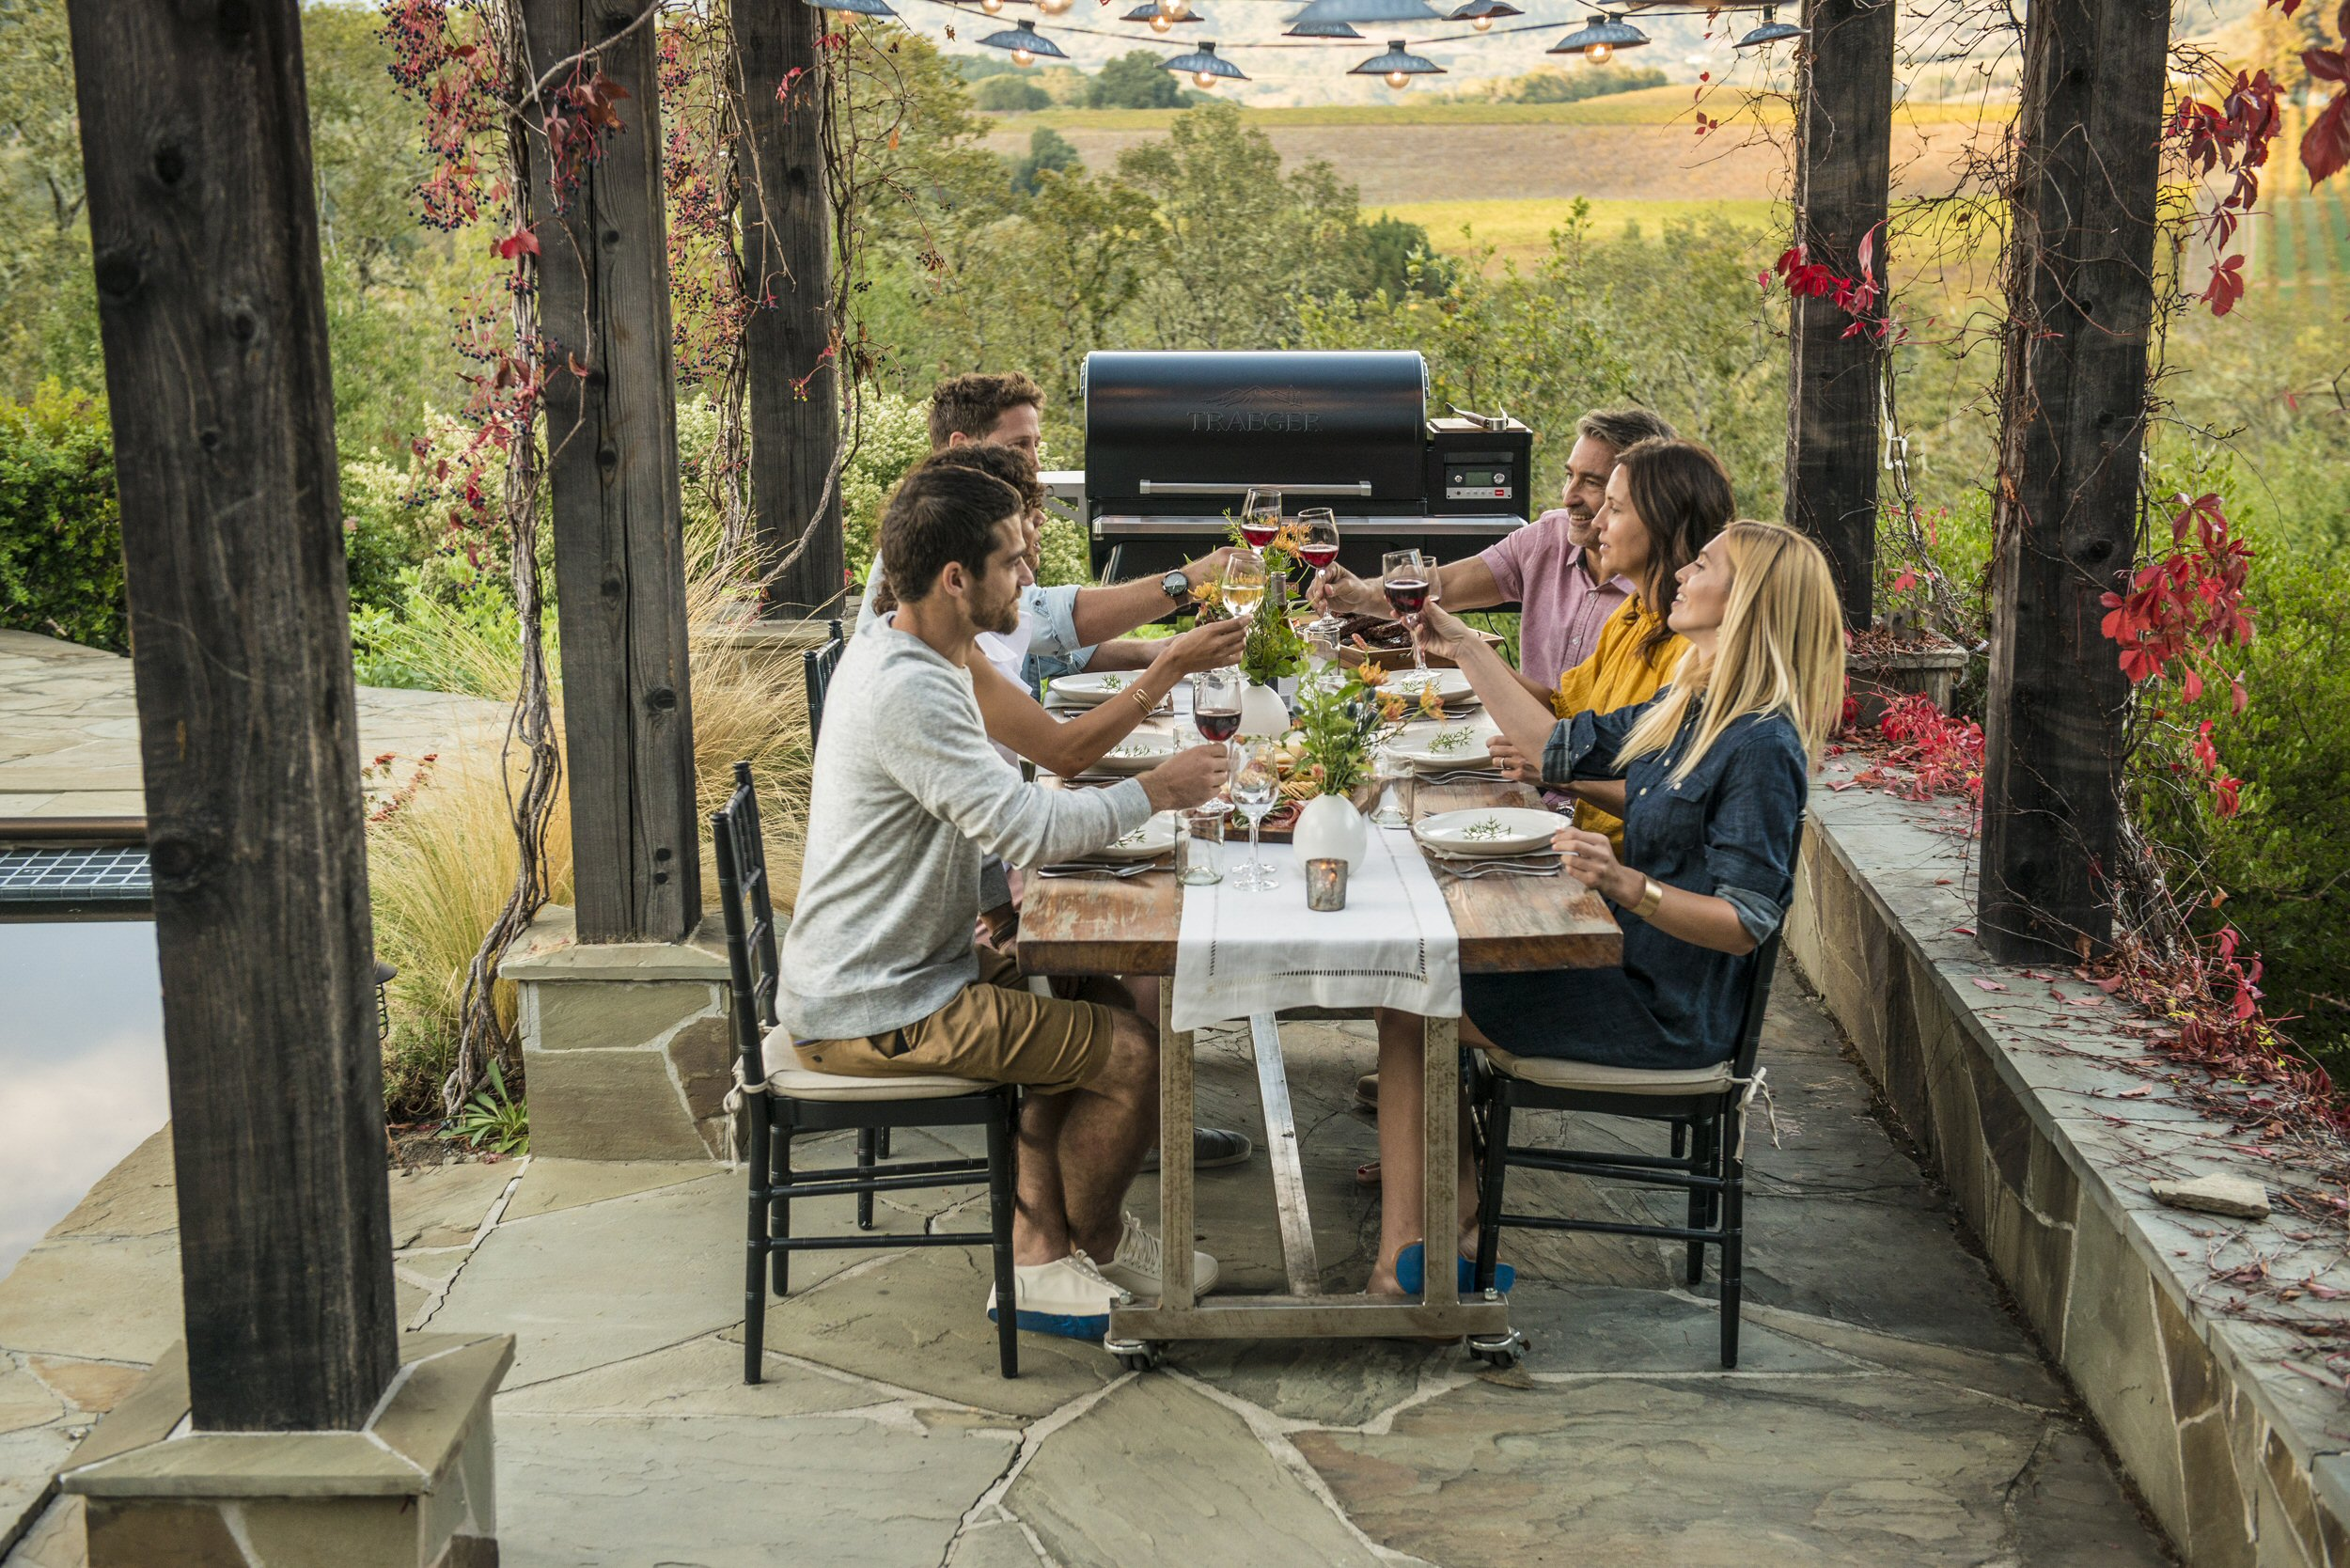 Traeger - The Original Wood-Fired Barbecue